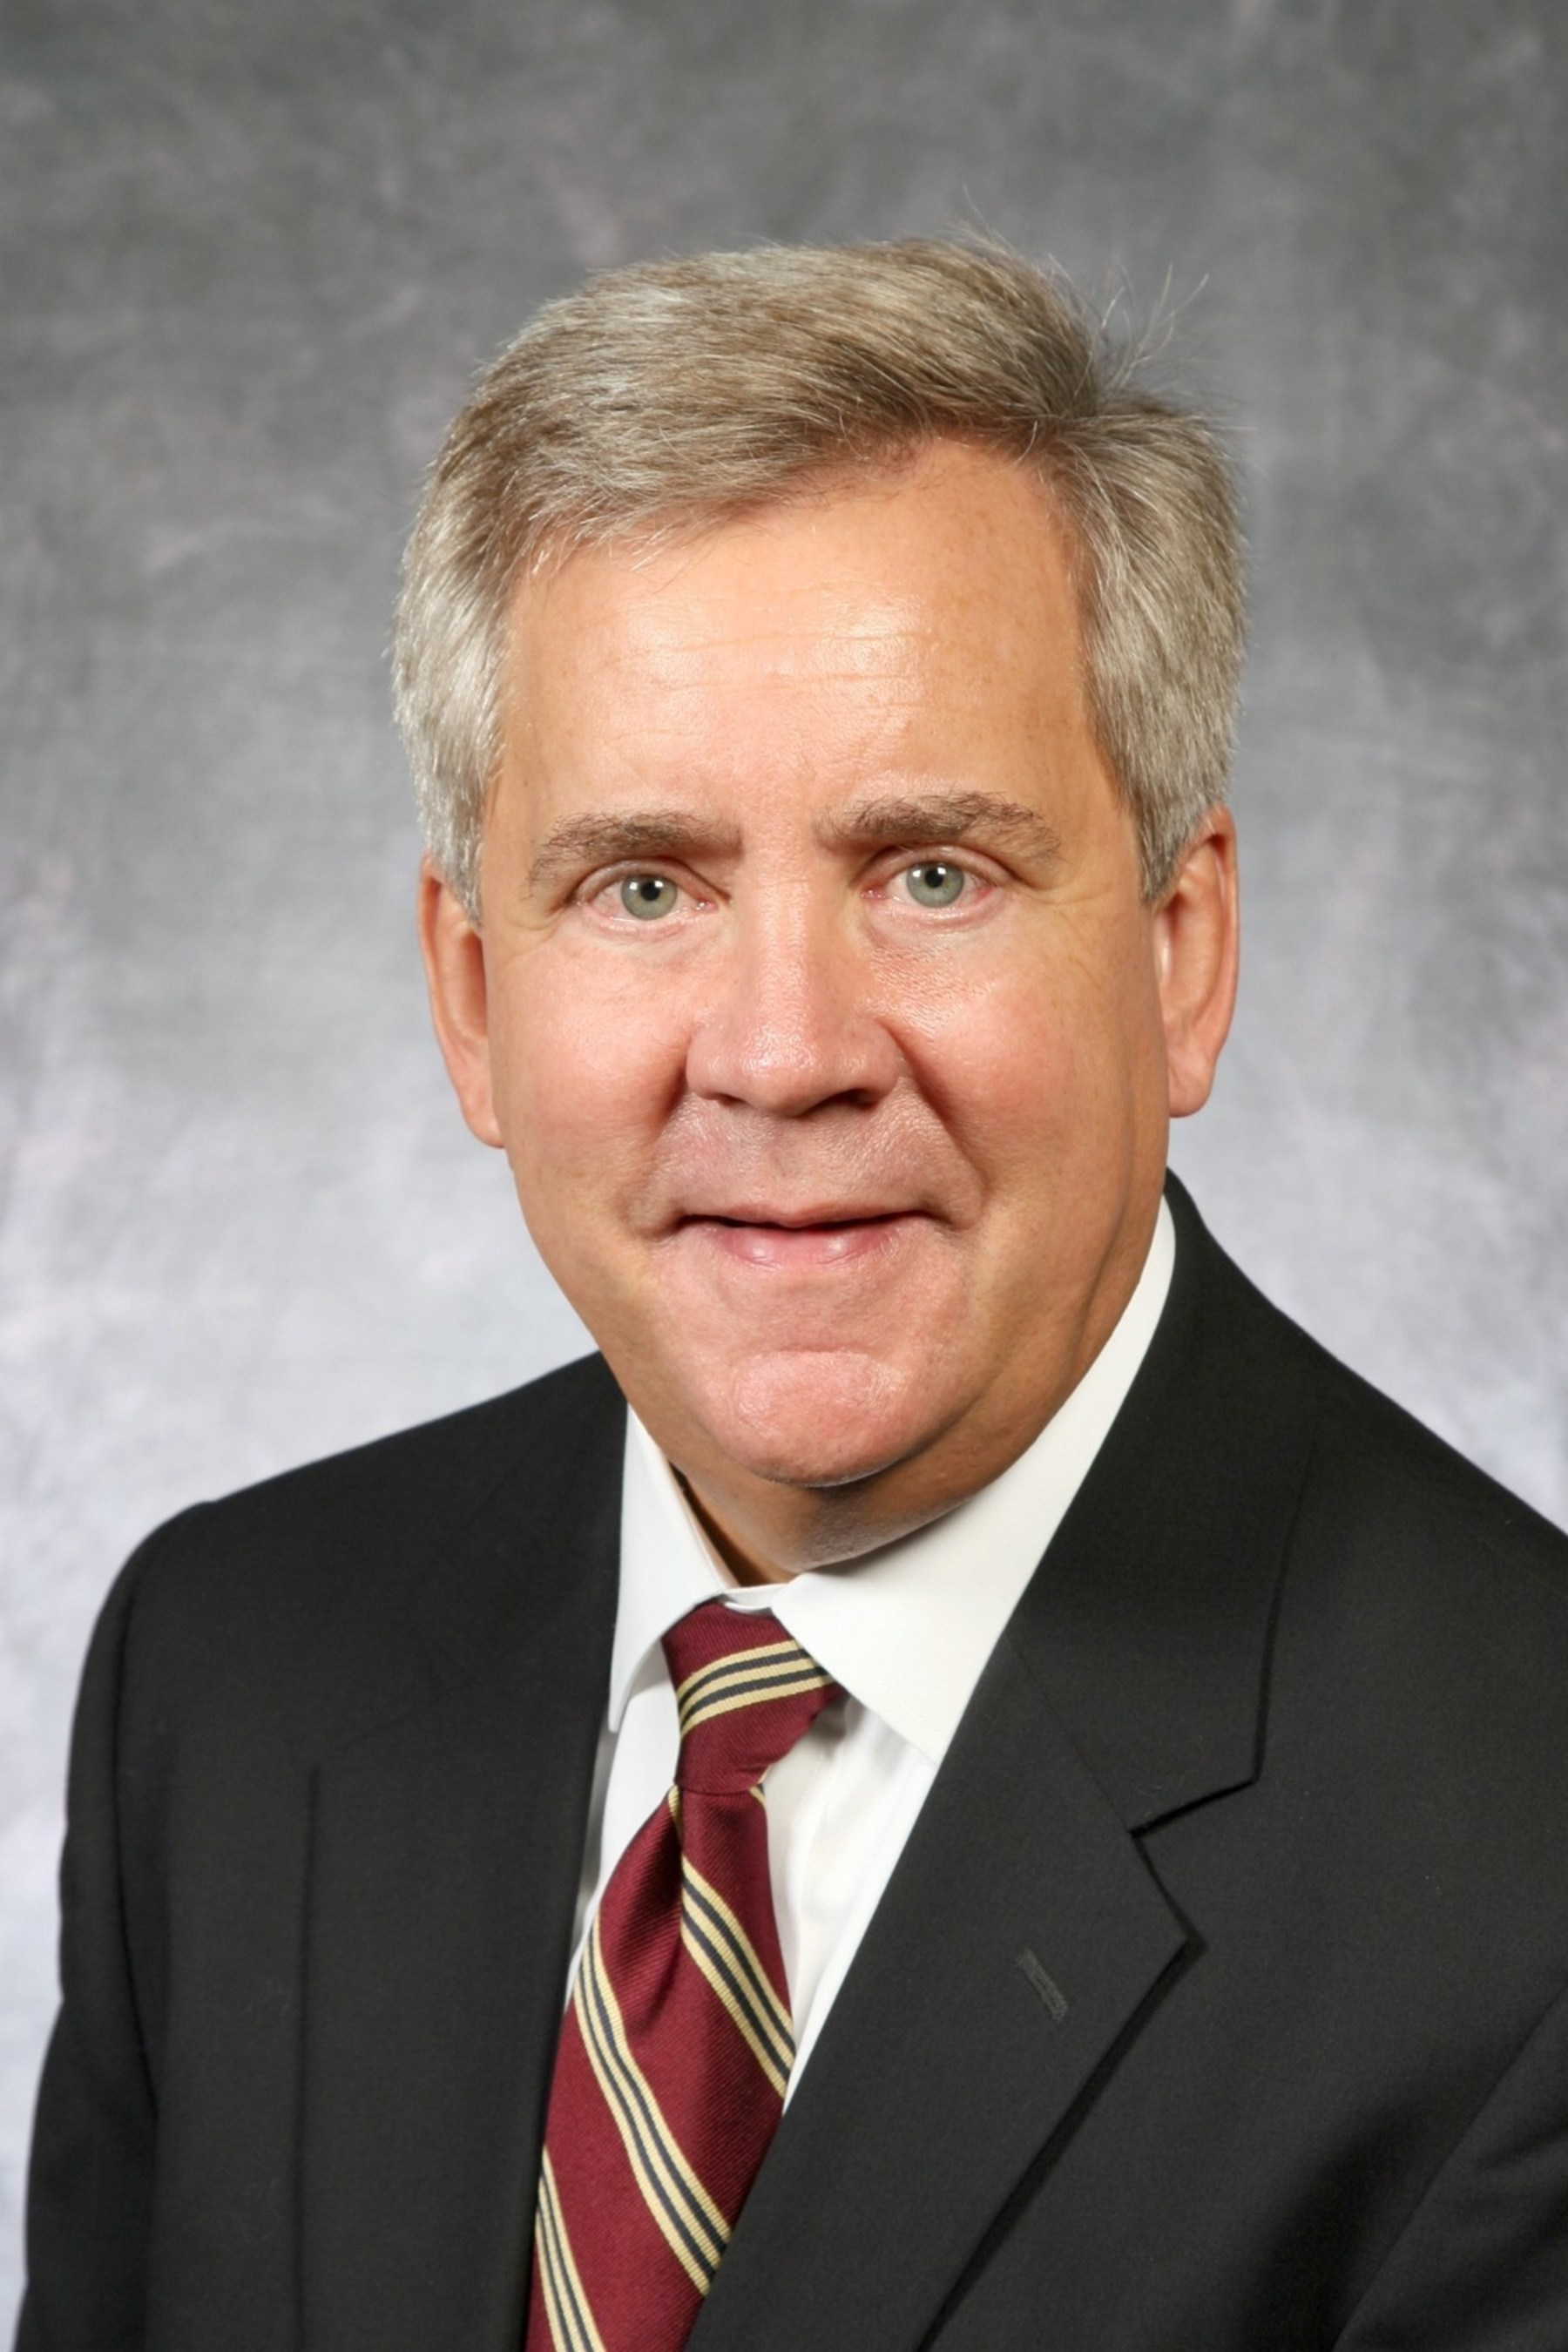 J. Patrick Faubion Named Head of Comerica's Business Bank